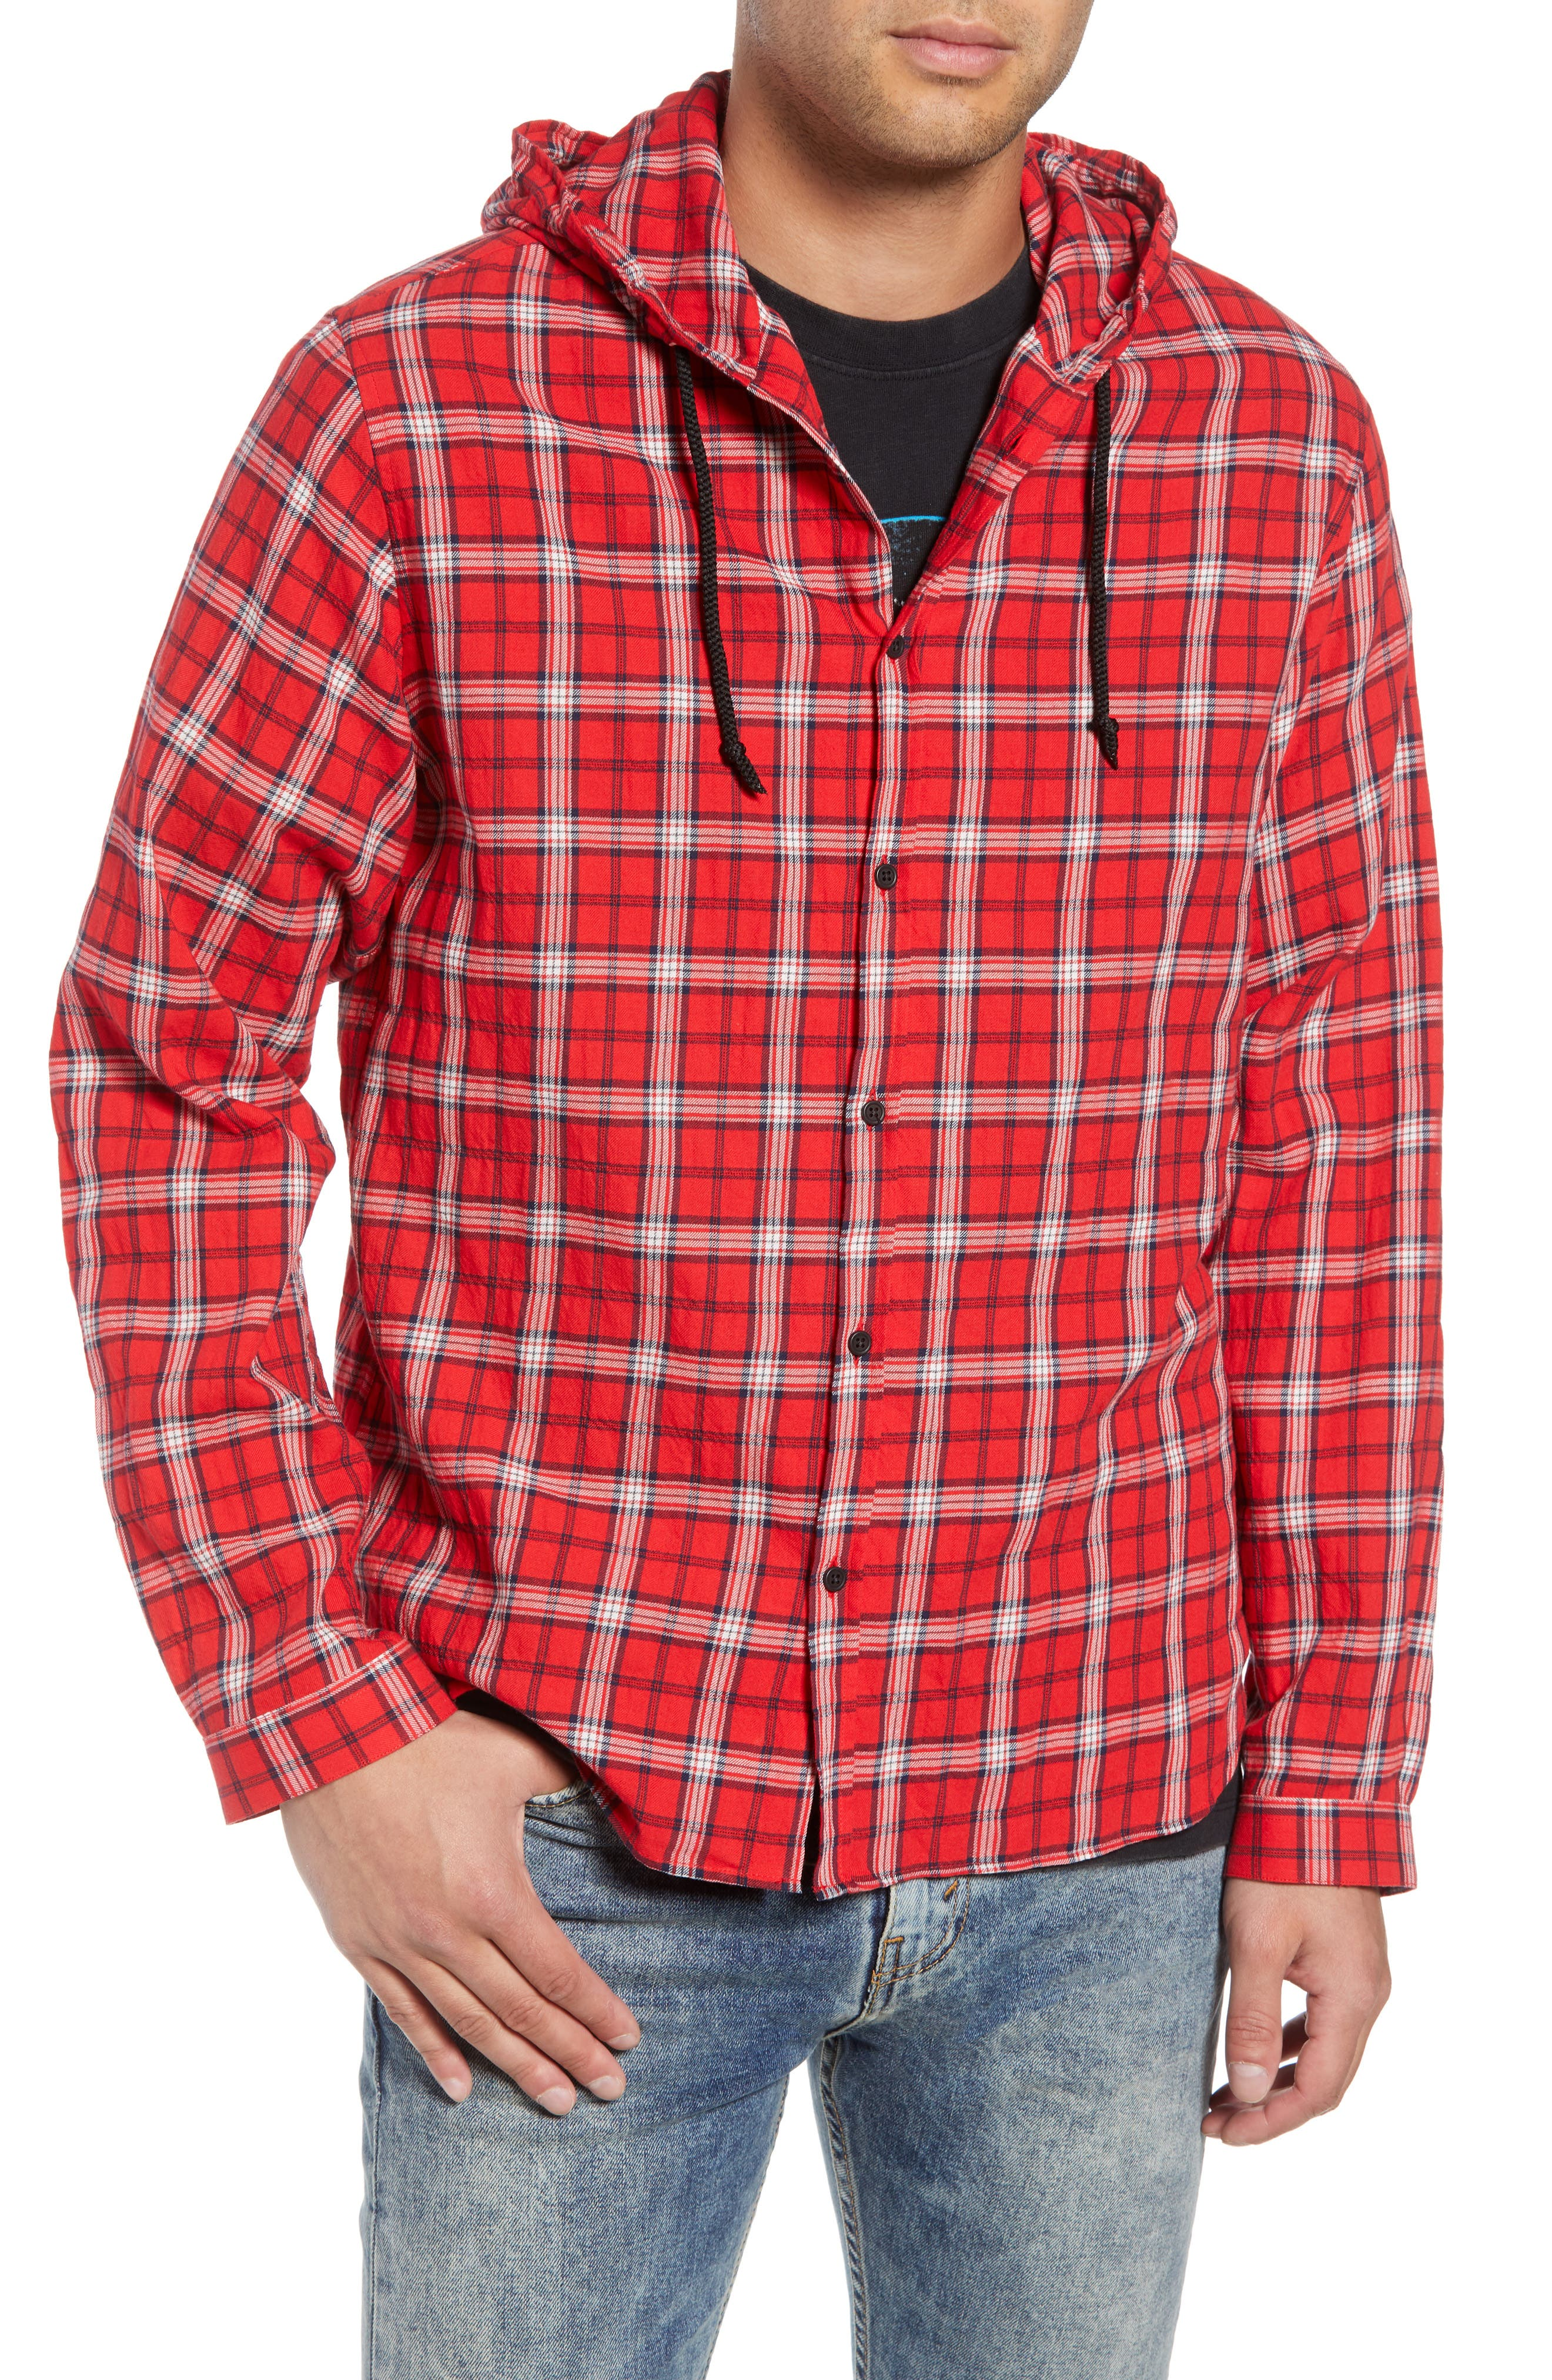 Checkered Classic Fit Hoodie Shirt Jacket,                             Main thumbnail 1, color,                             600